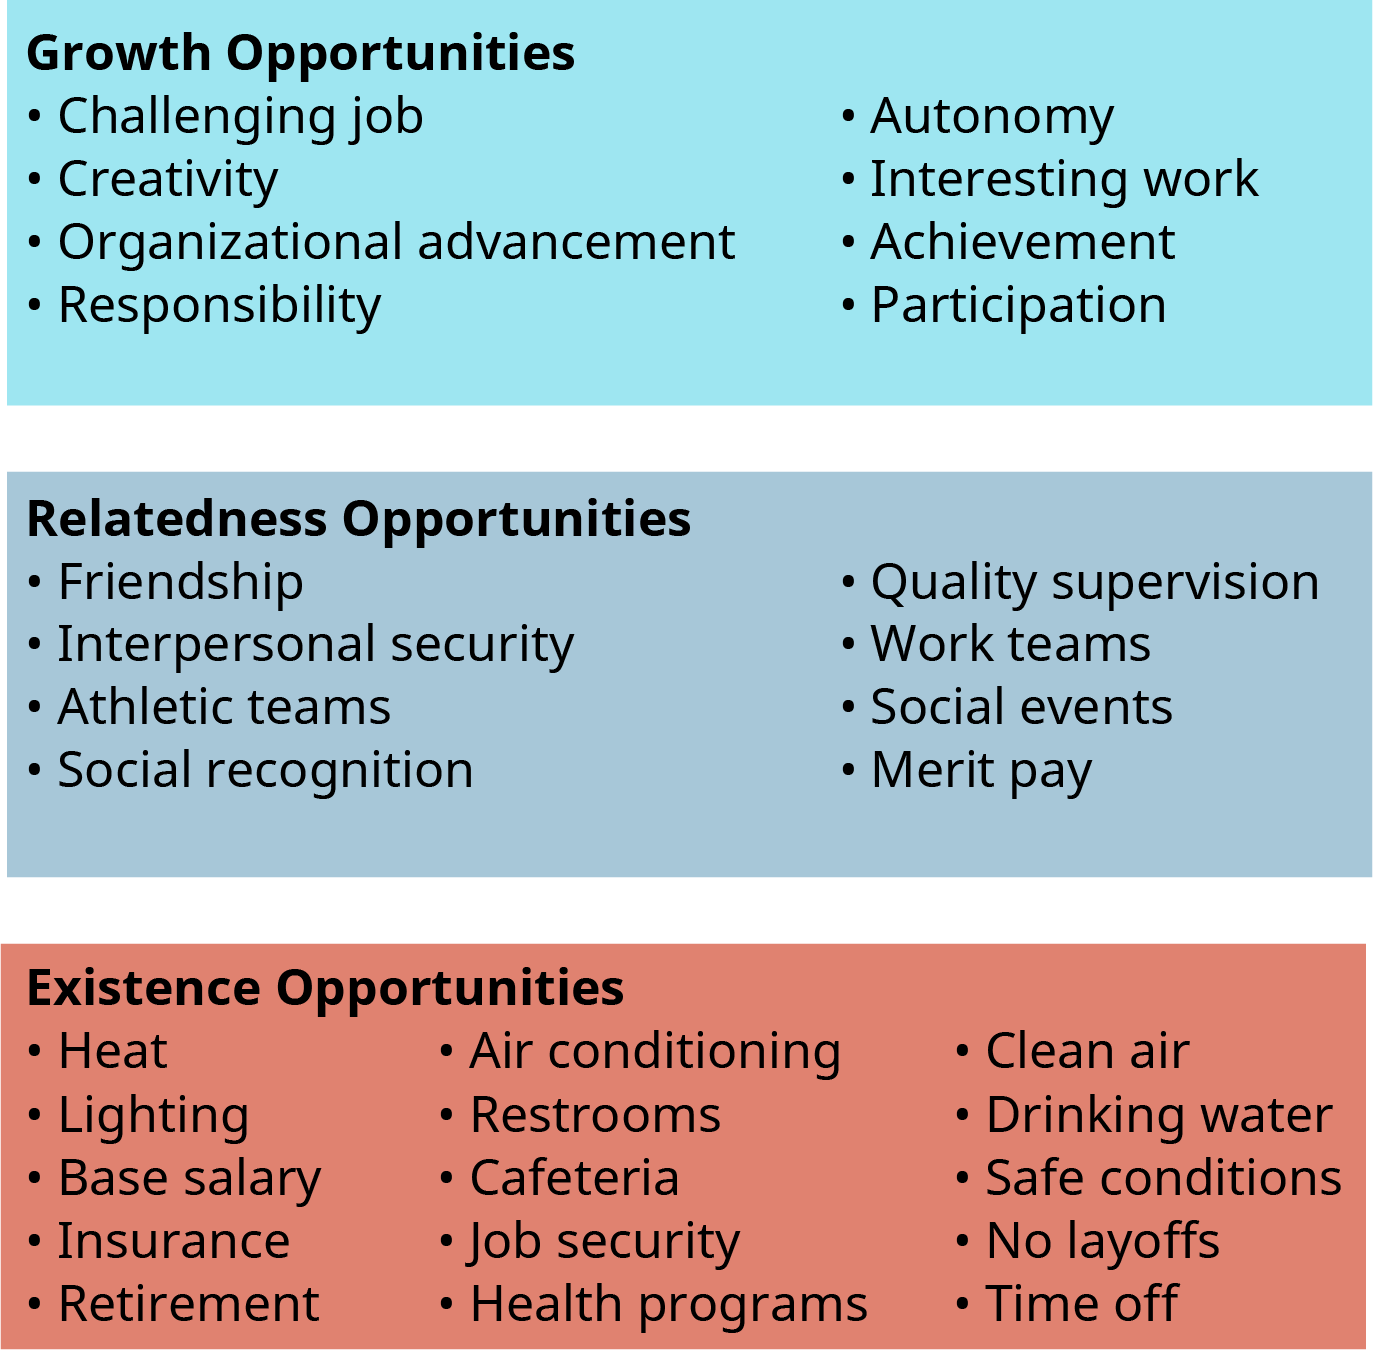 An illustration shows the various ways in which organizations can help their members satisfy three needs. From bottom upward, the needs are Existence needs, Relatedness needs, and Growth needs.